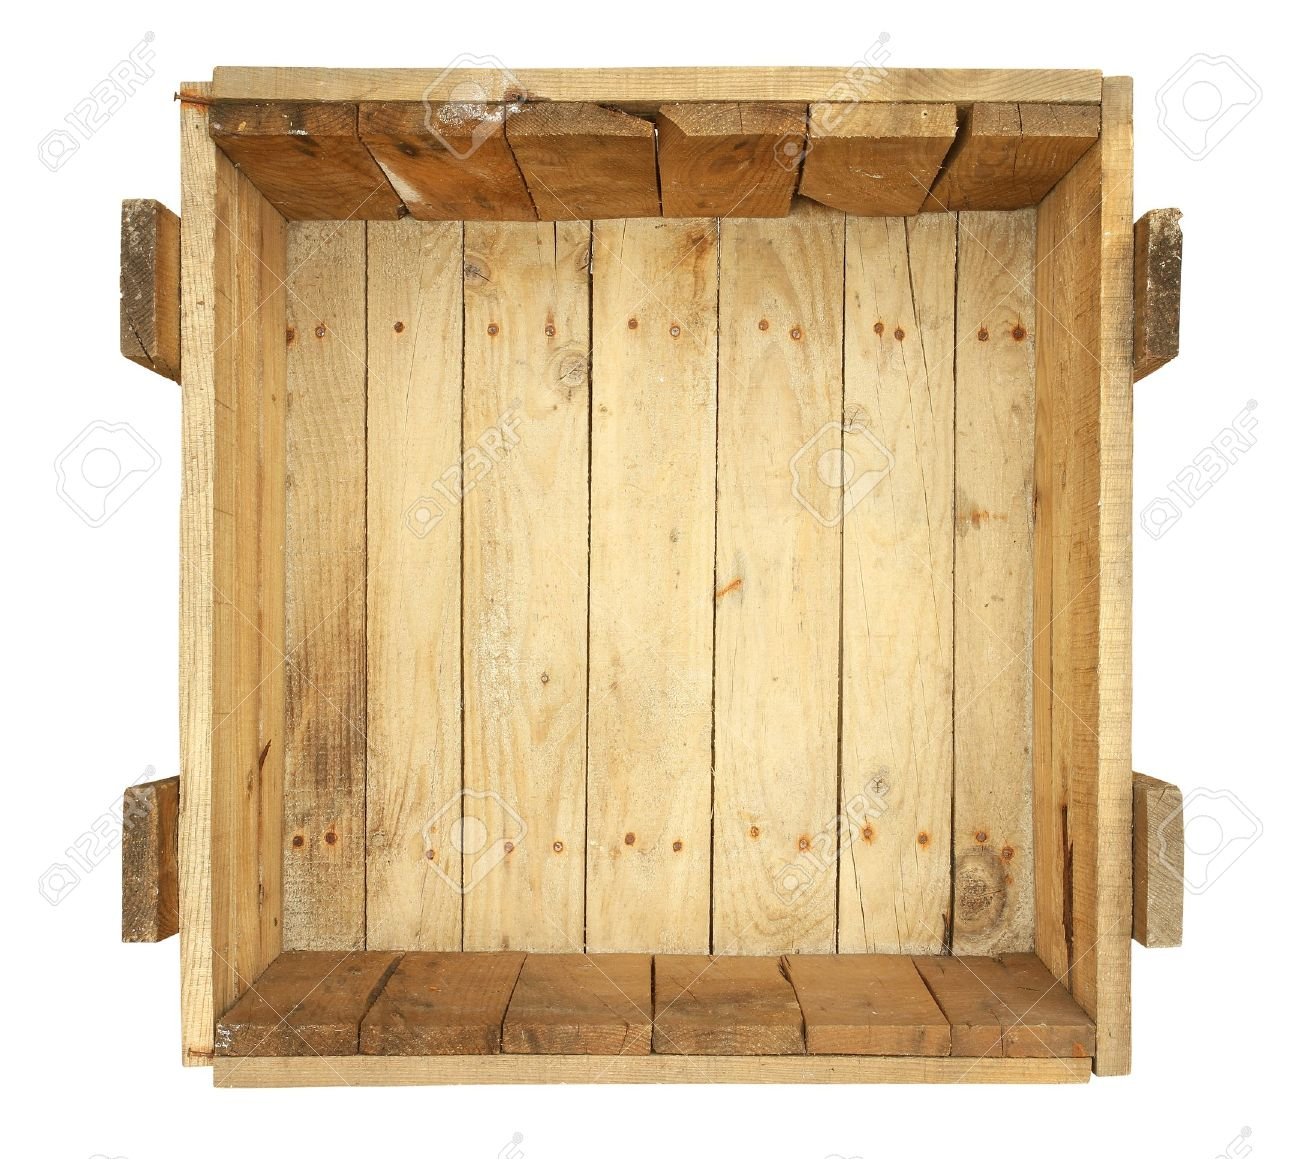 Top view of old wooden box isolated on white background Stock Photo - 13429930